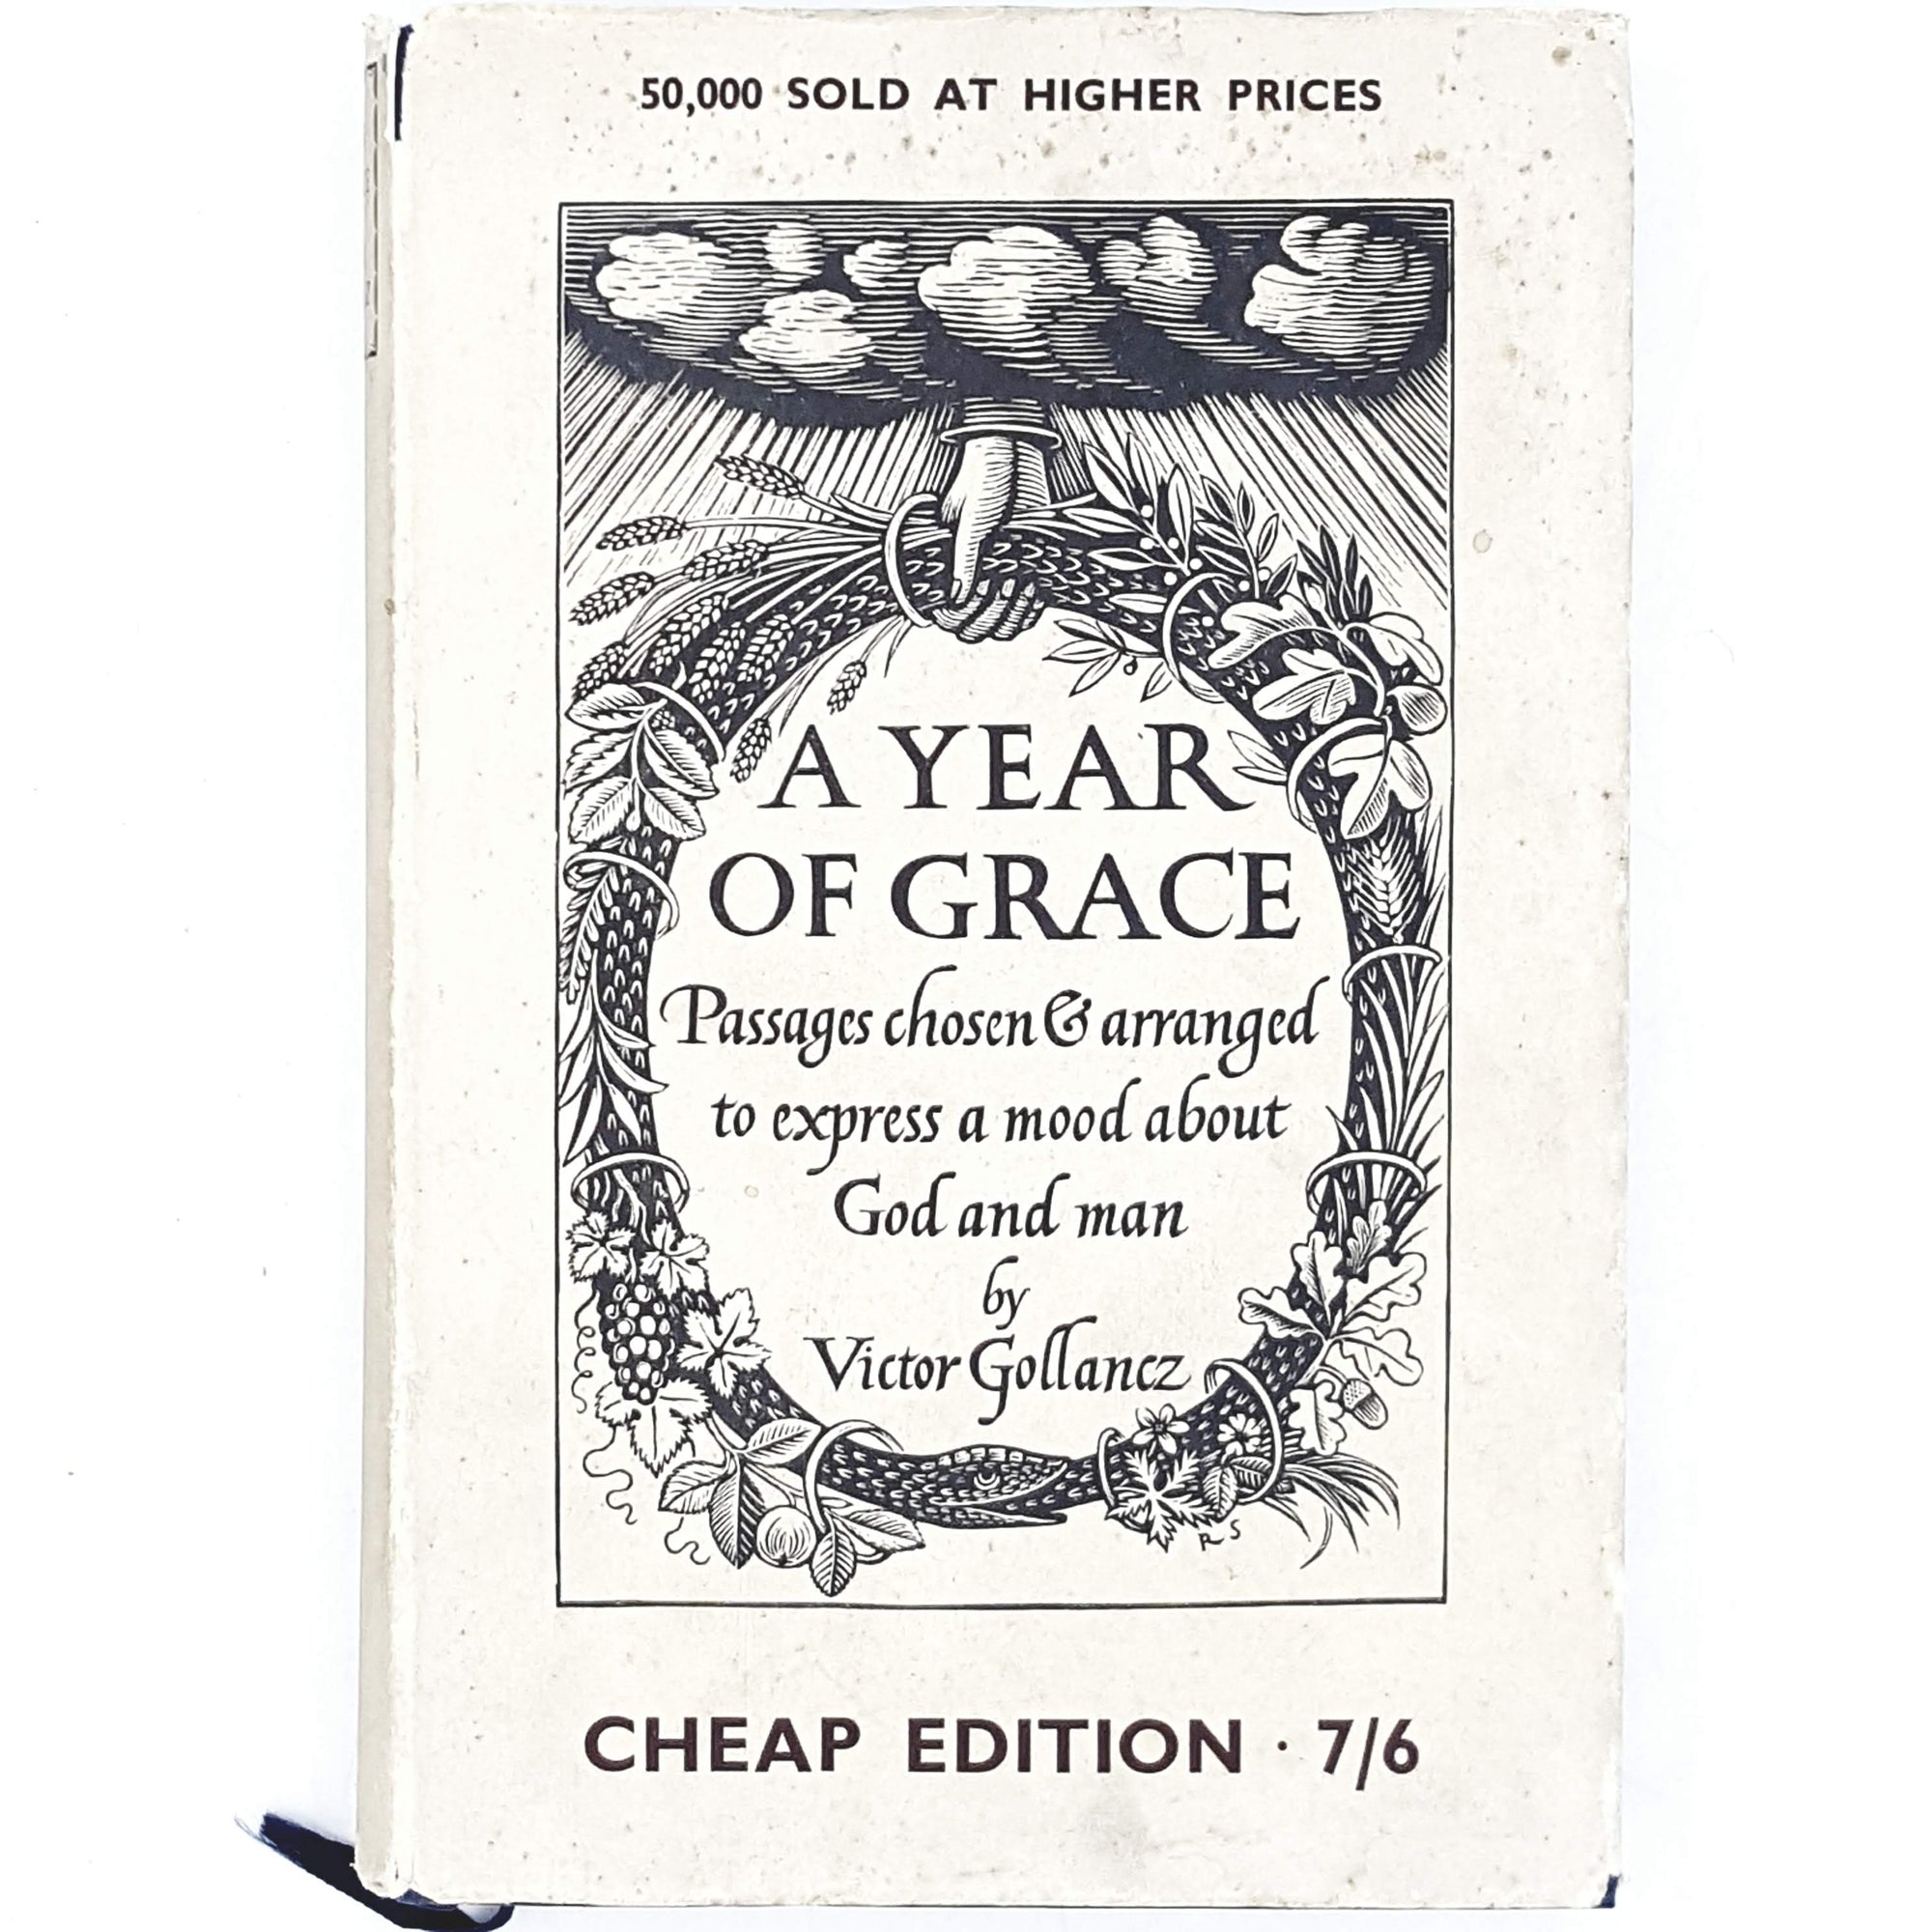 A Year of Grace by Victor Gollancz 1951